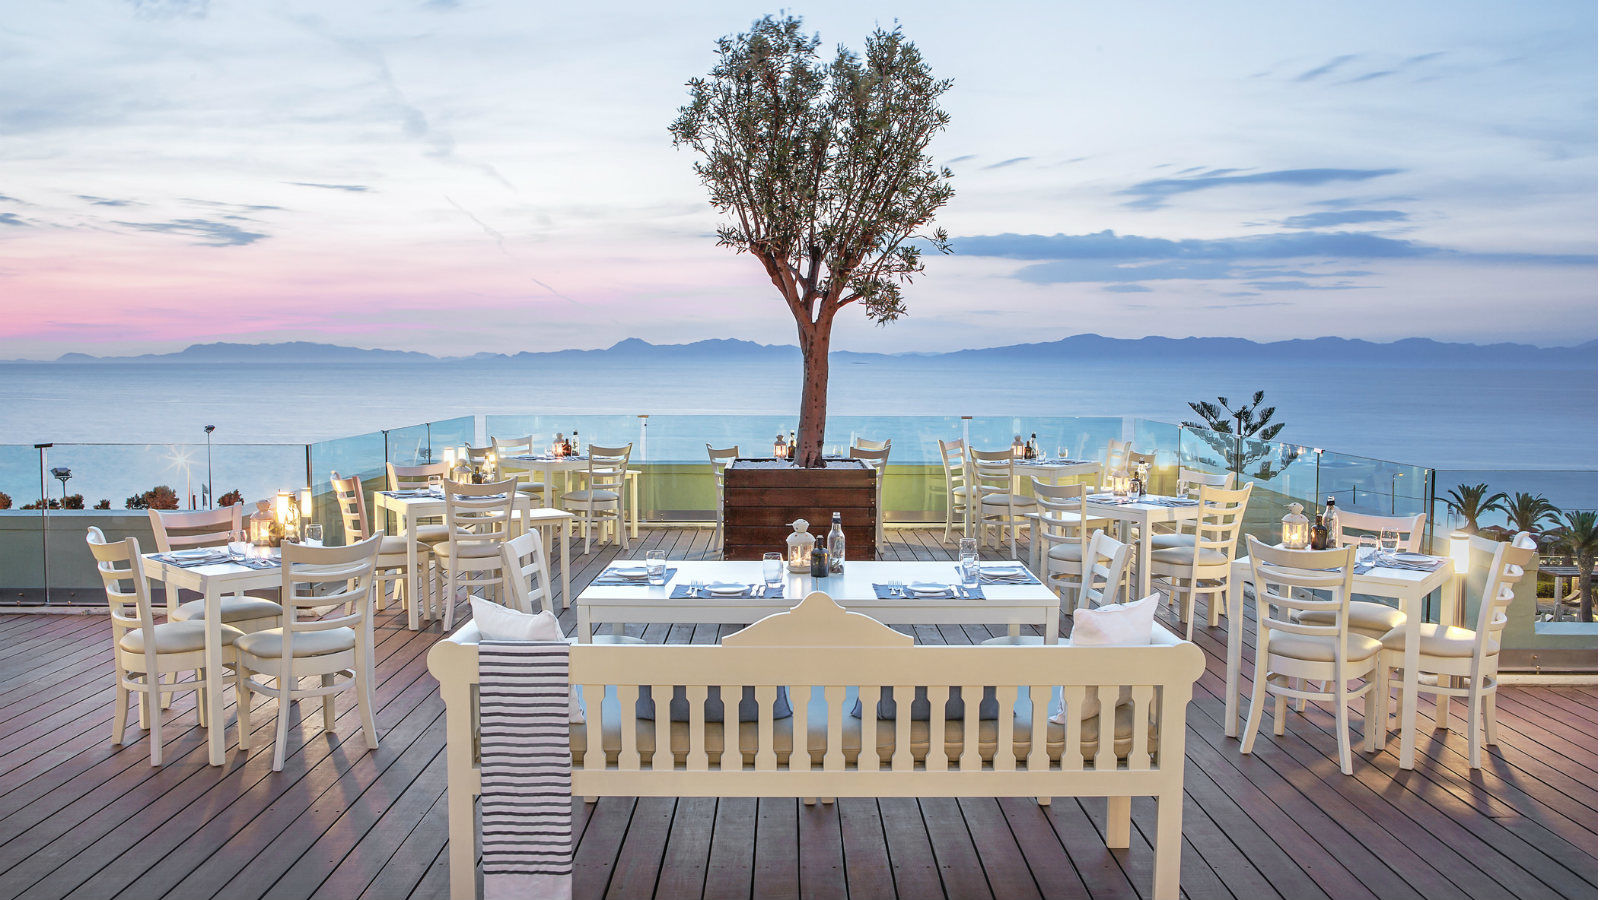 Sea View - Thea Restaurant featuring traditional Greek Cuisine at Sheraton Rhodes Resort